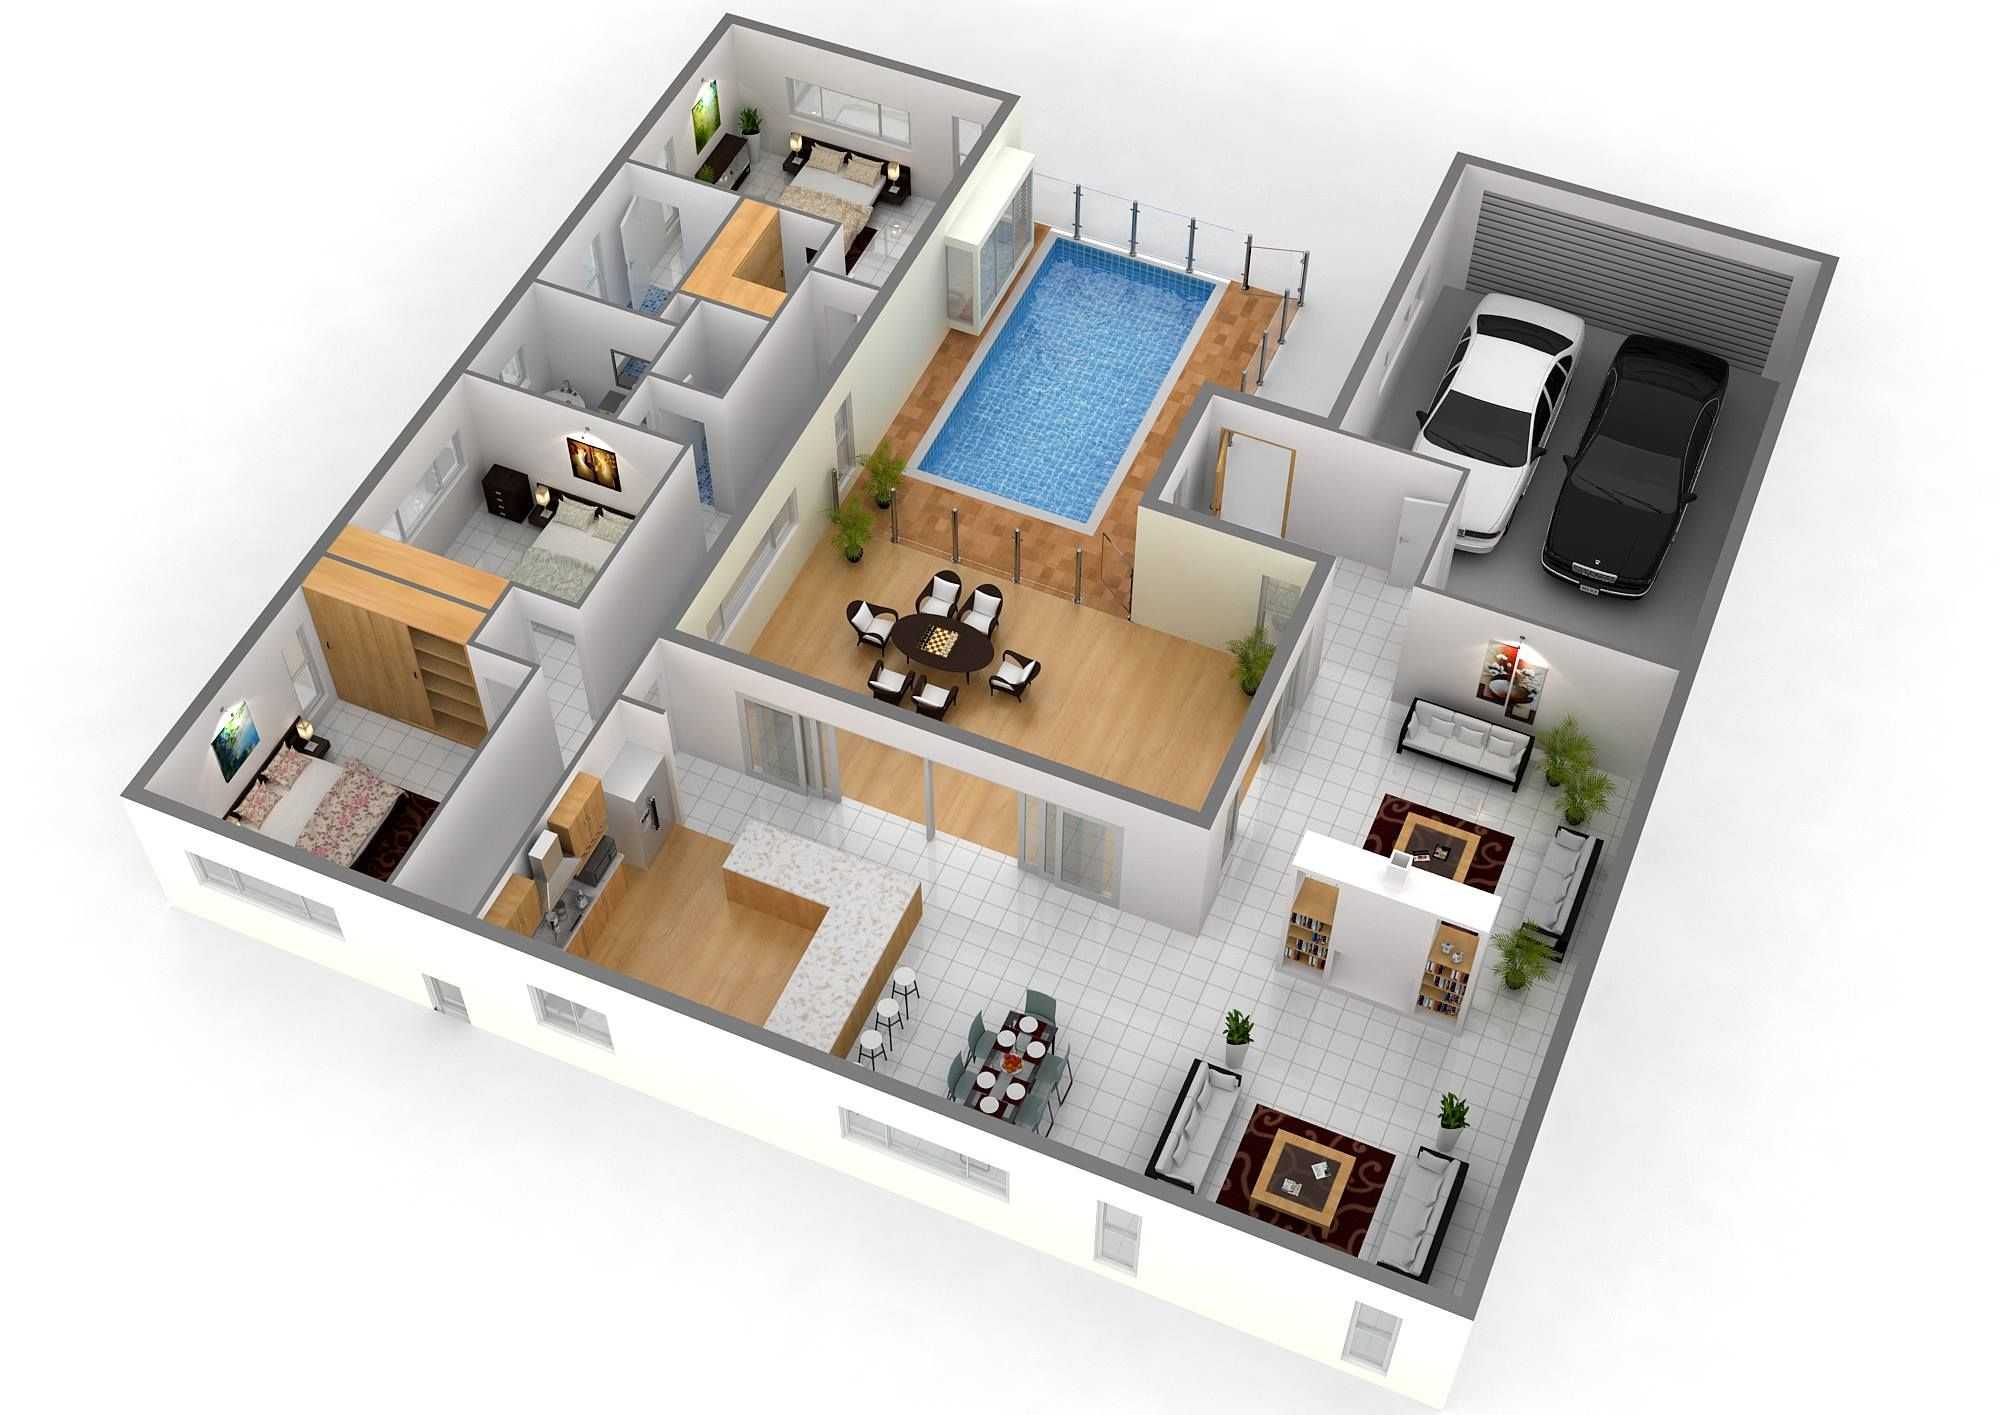 3d Modern Home Design Plans Ideas 3d House Plans Home Design Plans House Floor Plans